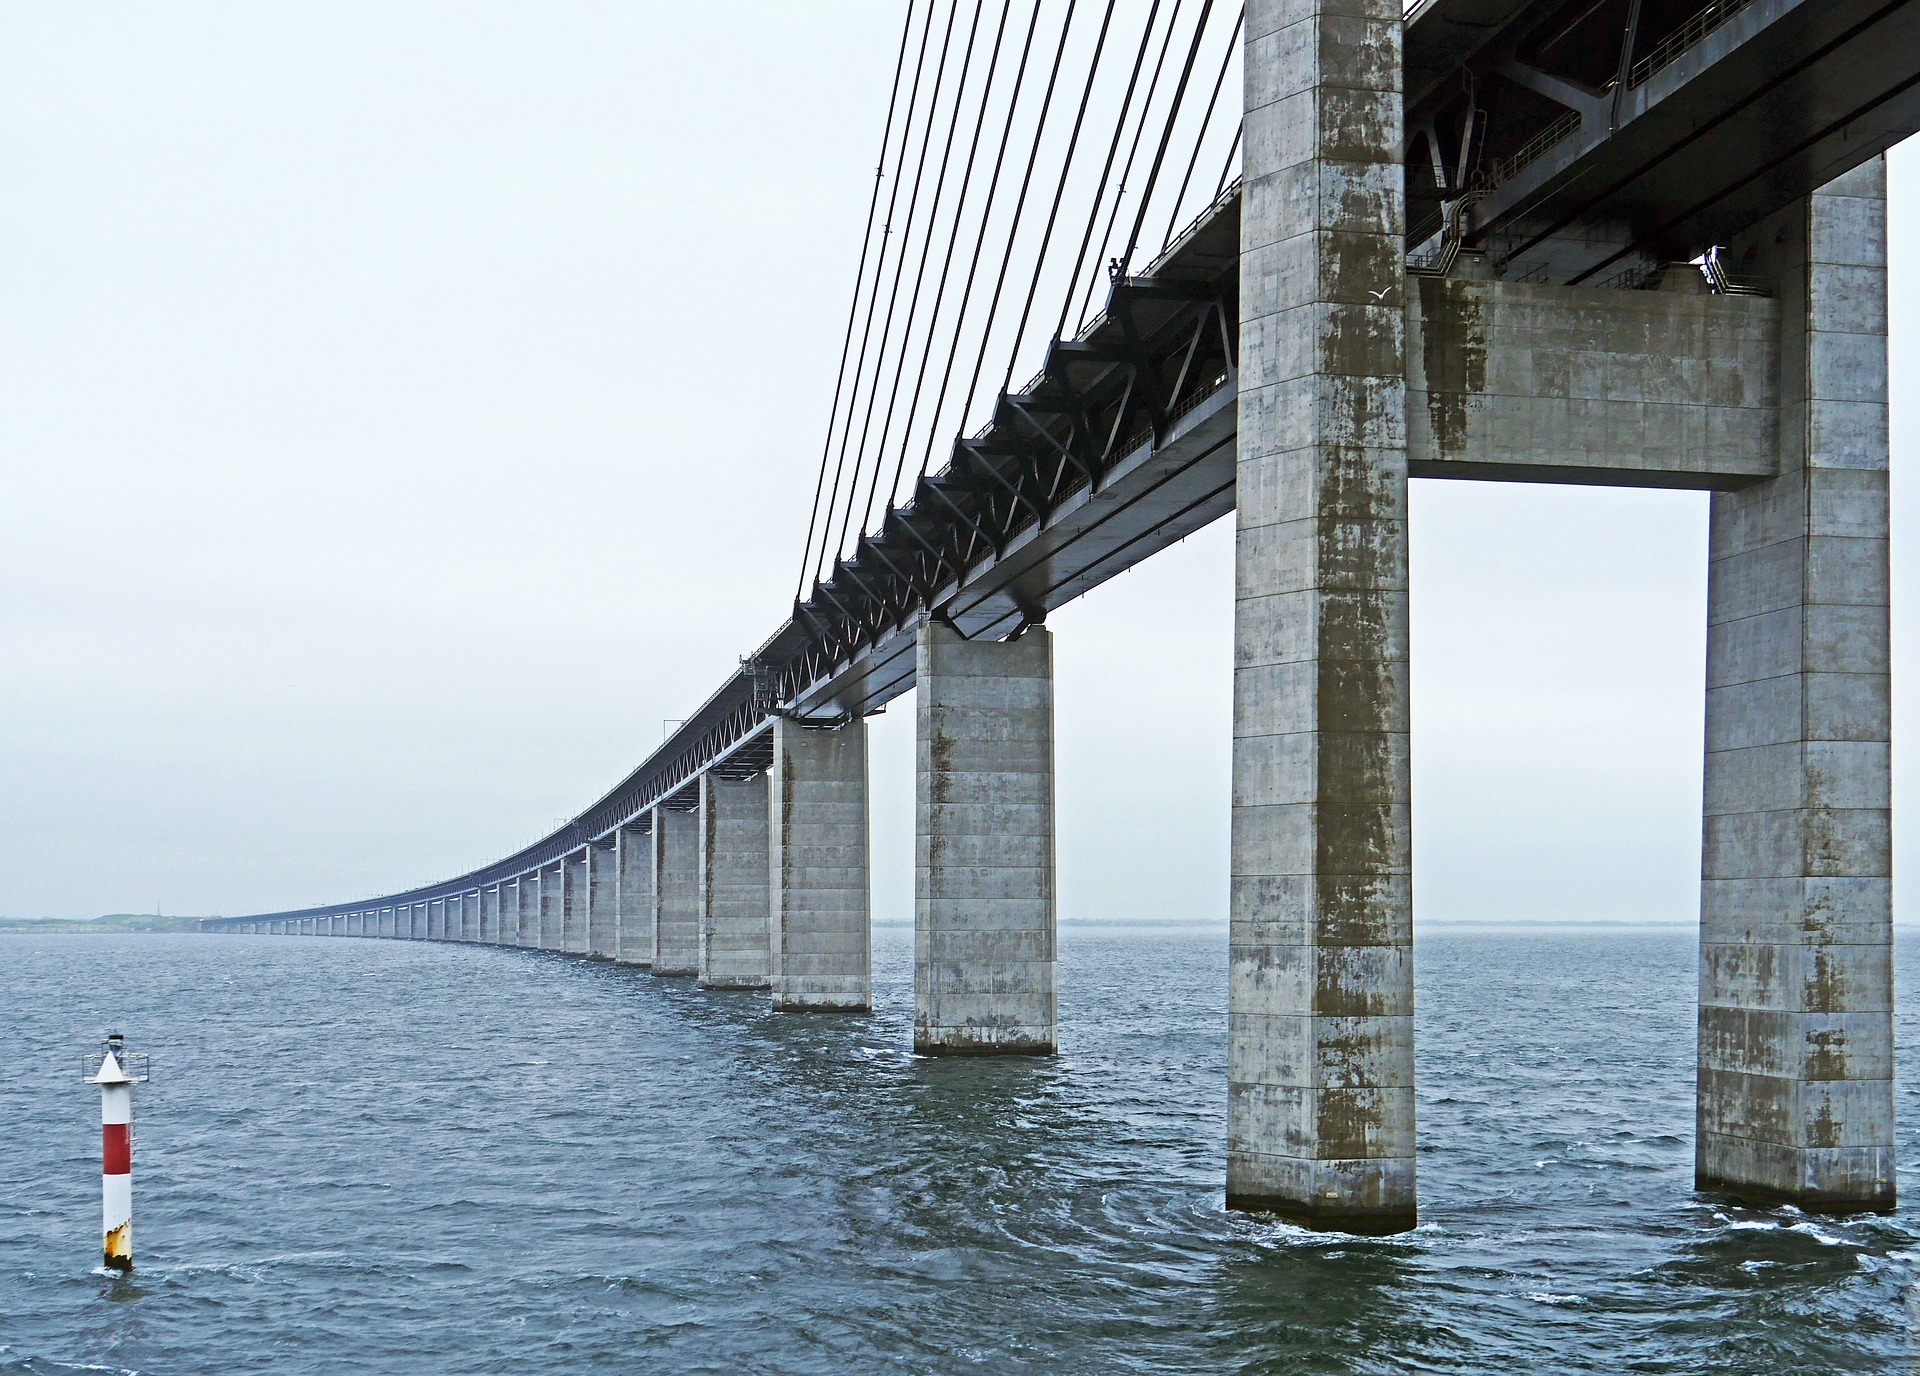 oresund-bridge-2417480 1920